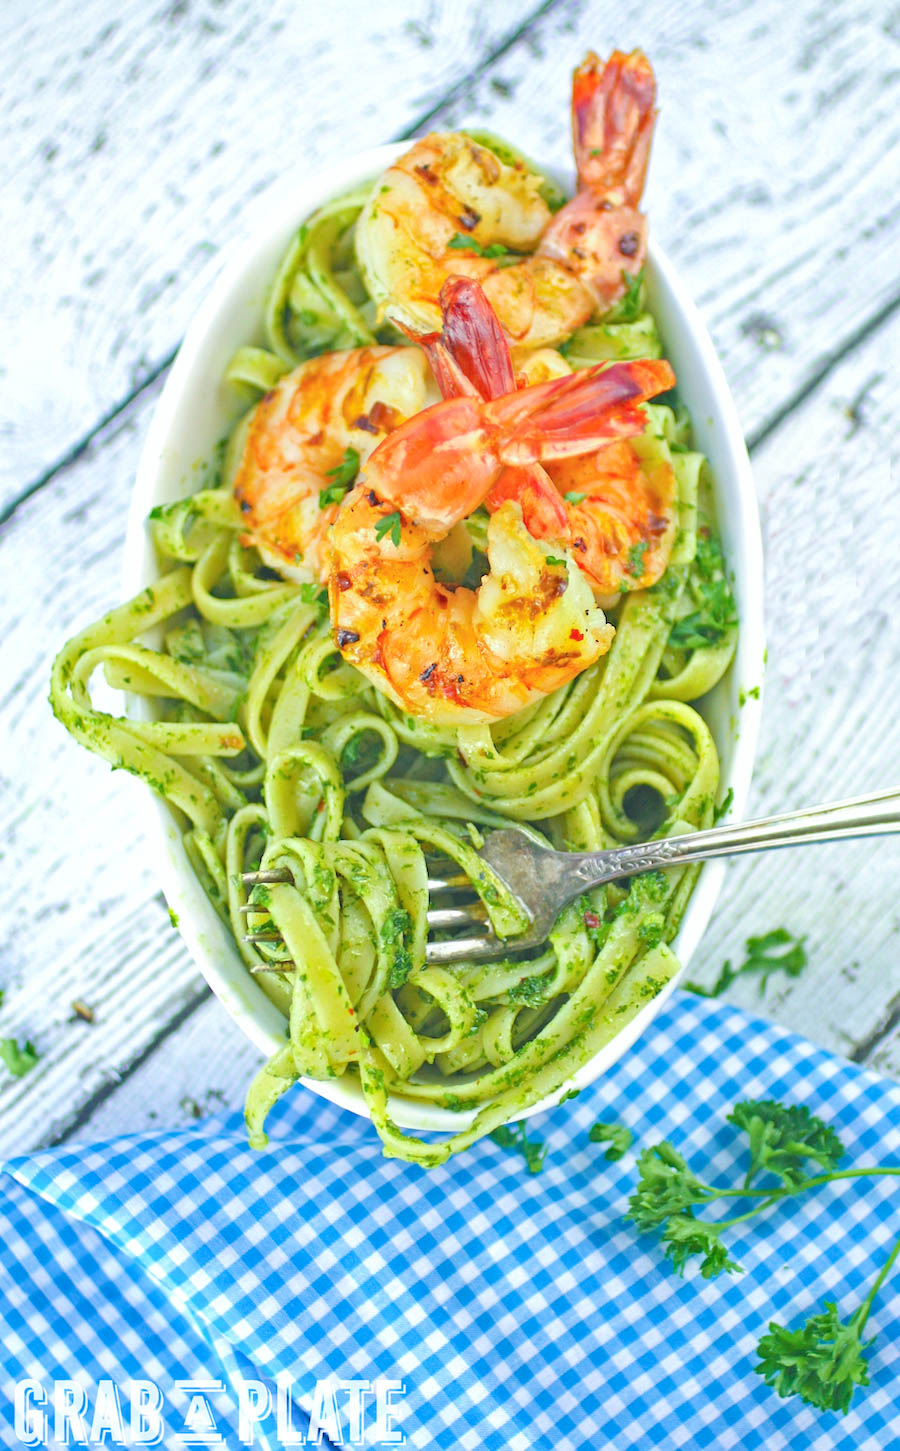 Chimichurri Pasta with Grilled Spicy Shrimp is a simple, flavorful dish. You'll enjoy Chimichurri Pasta with Grilled Spicy Shrimp any night.